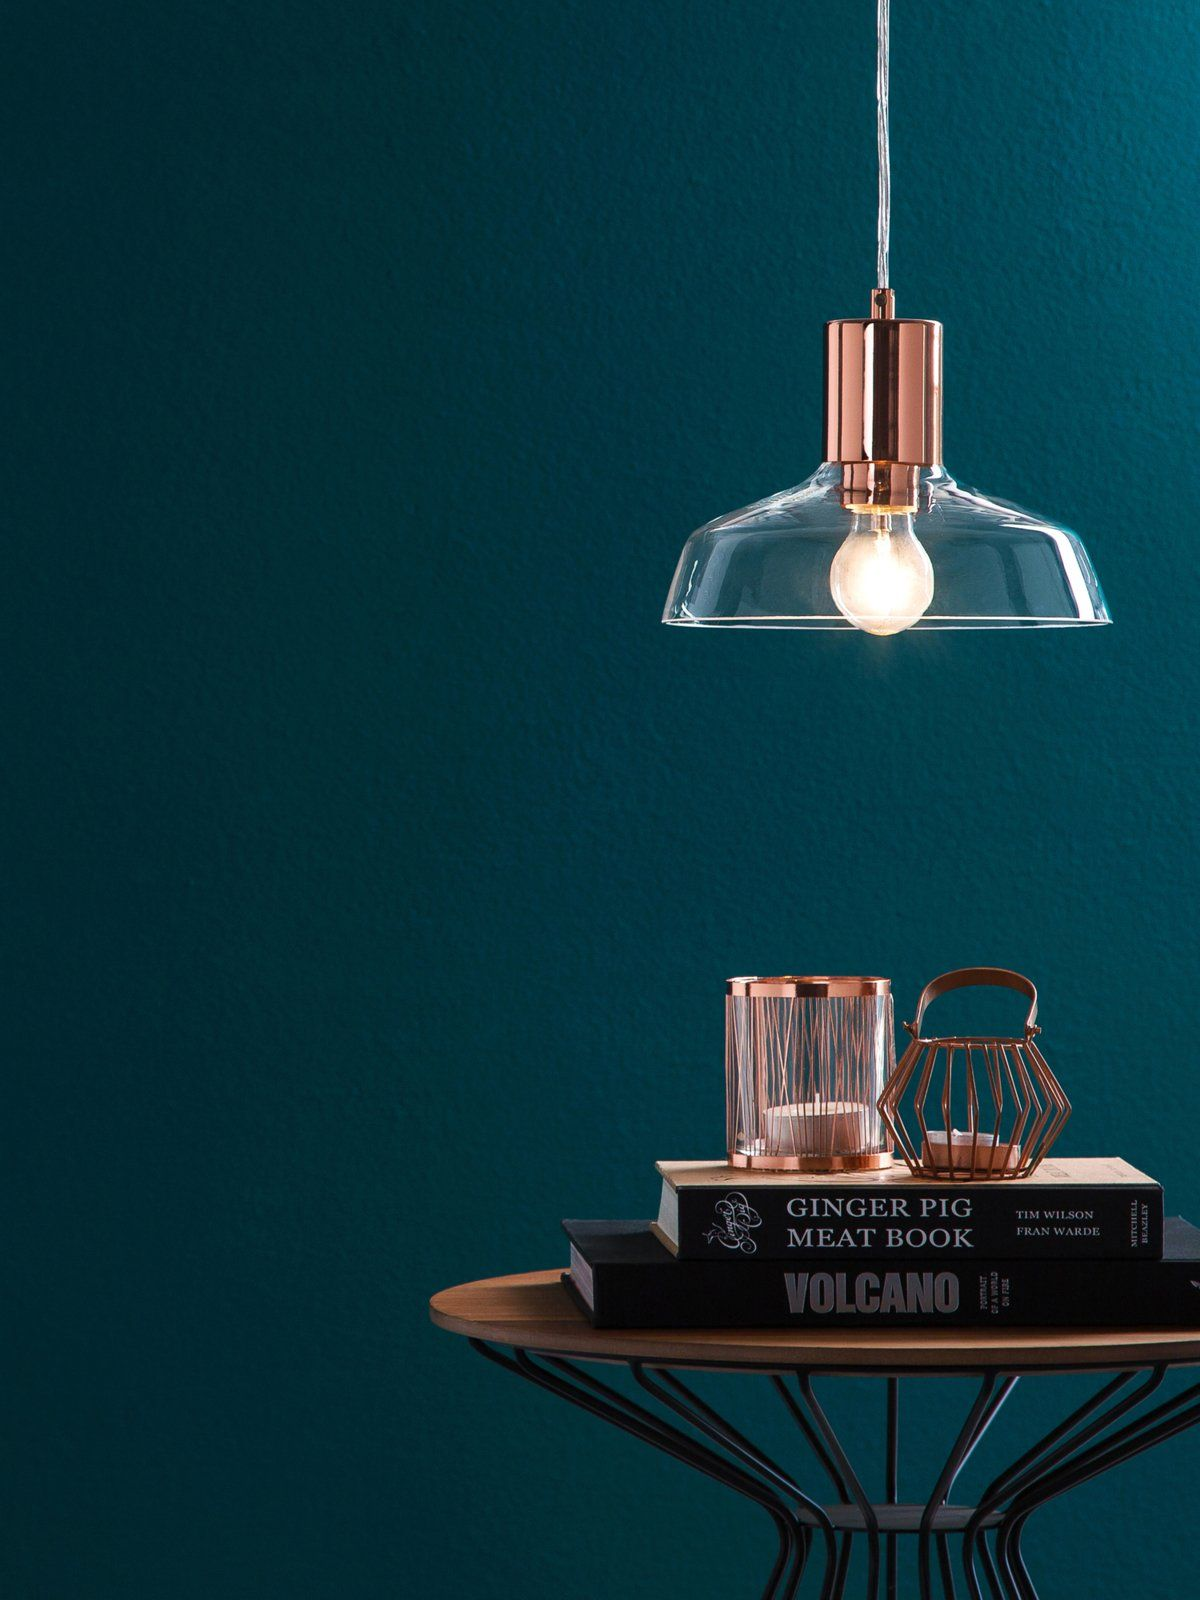 Schlafzimmer Lampe Home24 Wohntrends 2017 Deko Möbel Farben And Co Navy Is The